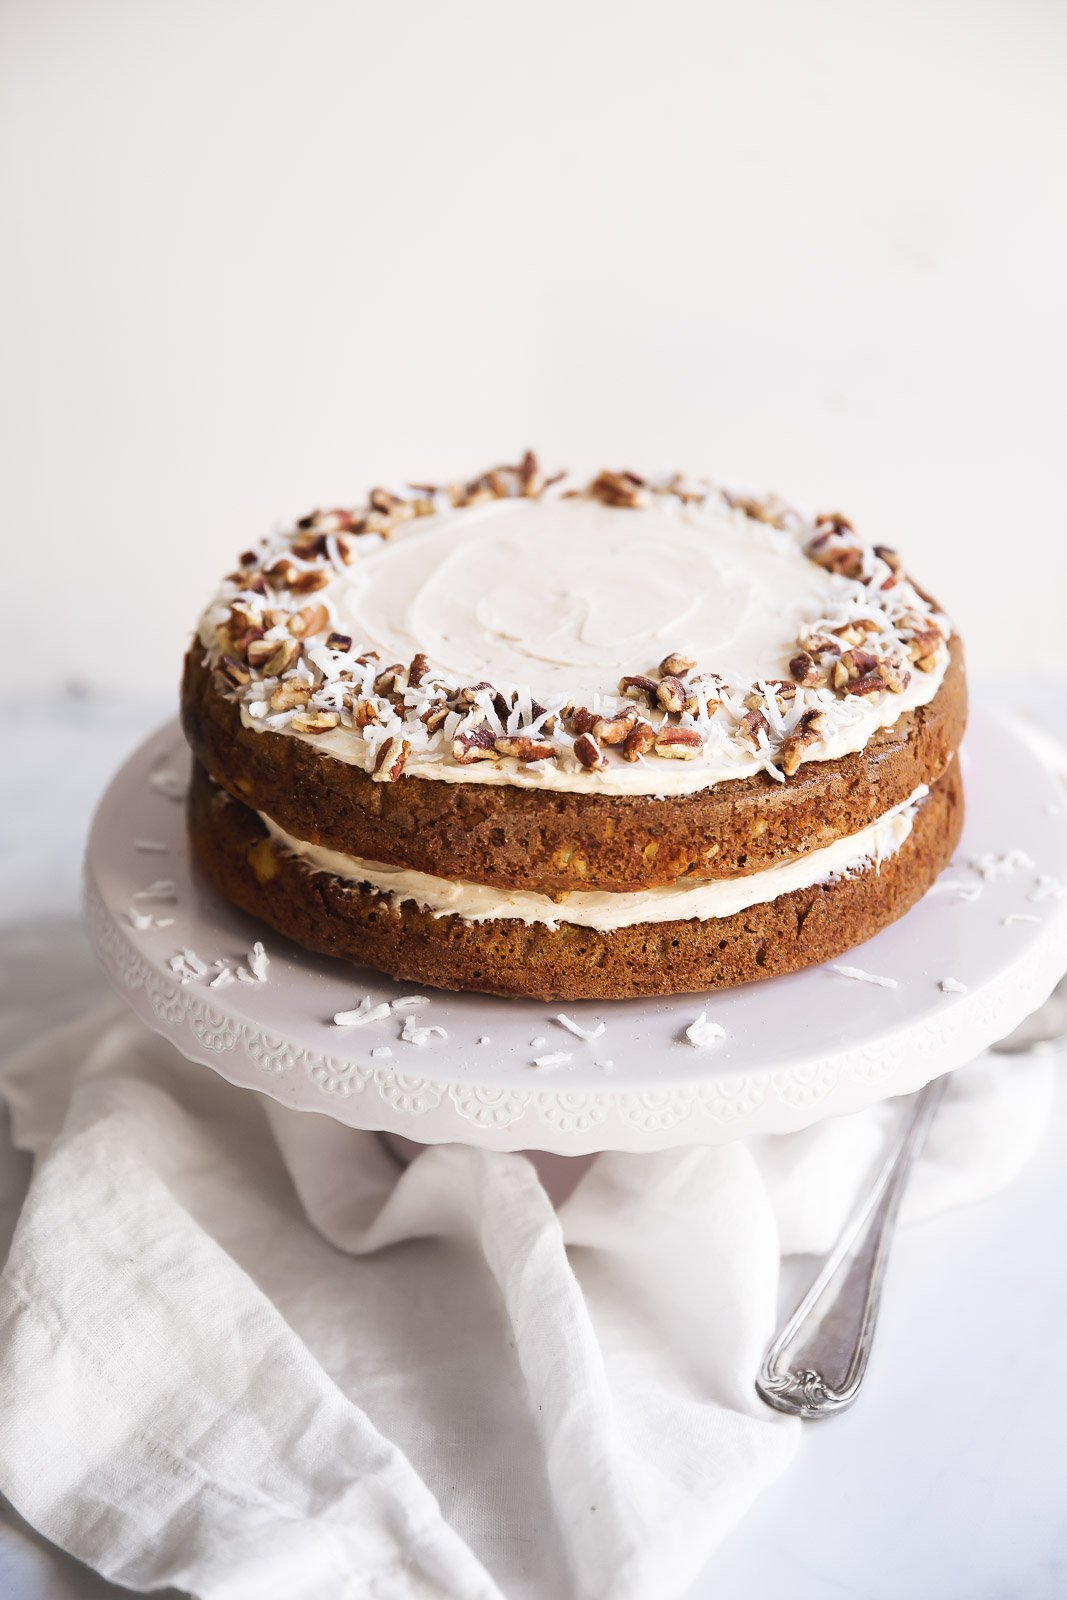 Lightened Up Gluten free carrot cake made from a mixture of almond and oat flour. Topped with a lovely, thick cinnamon cream cheese frosting! Perfect for parties, Easter, or any holiday!